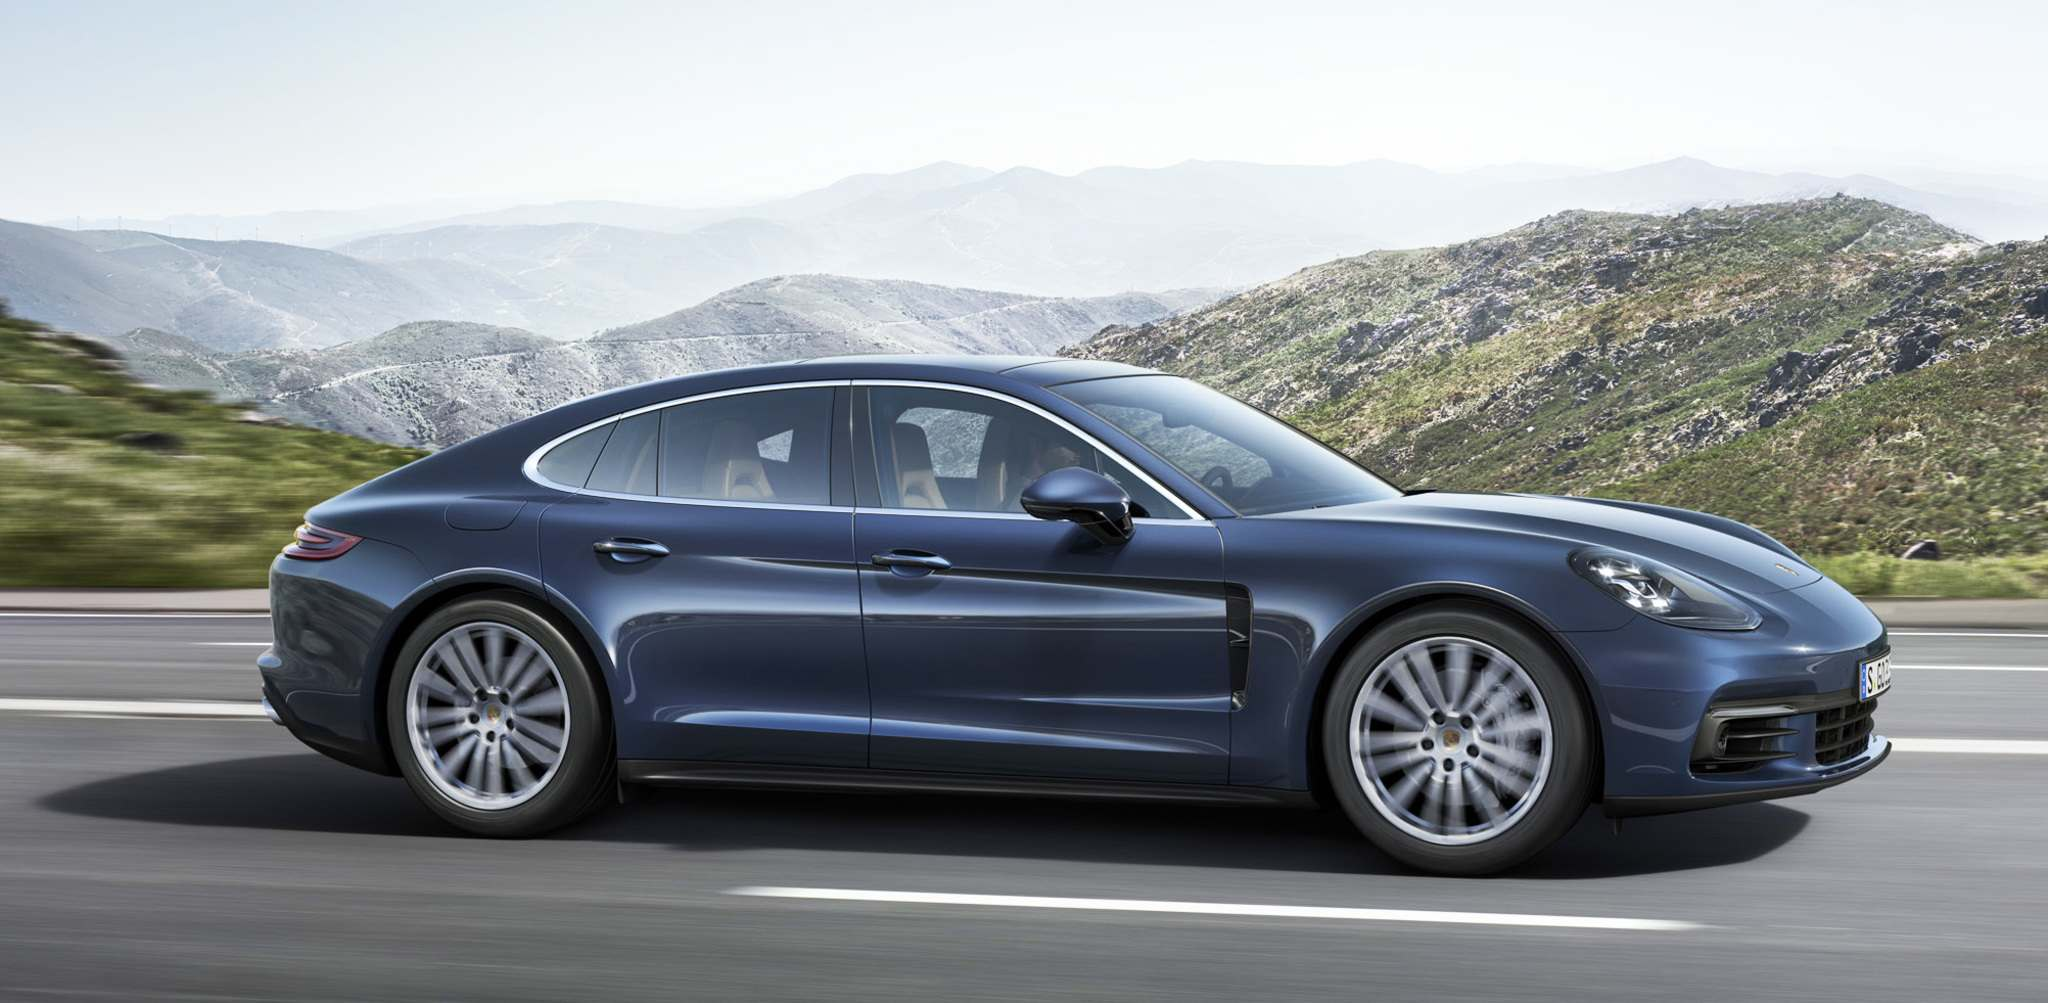 Porsche Canada The Porsche Panamera is all-new for 2017, with two new engine options, a new gearbox and the styling for both the interior and exterior was revamped.